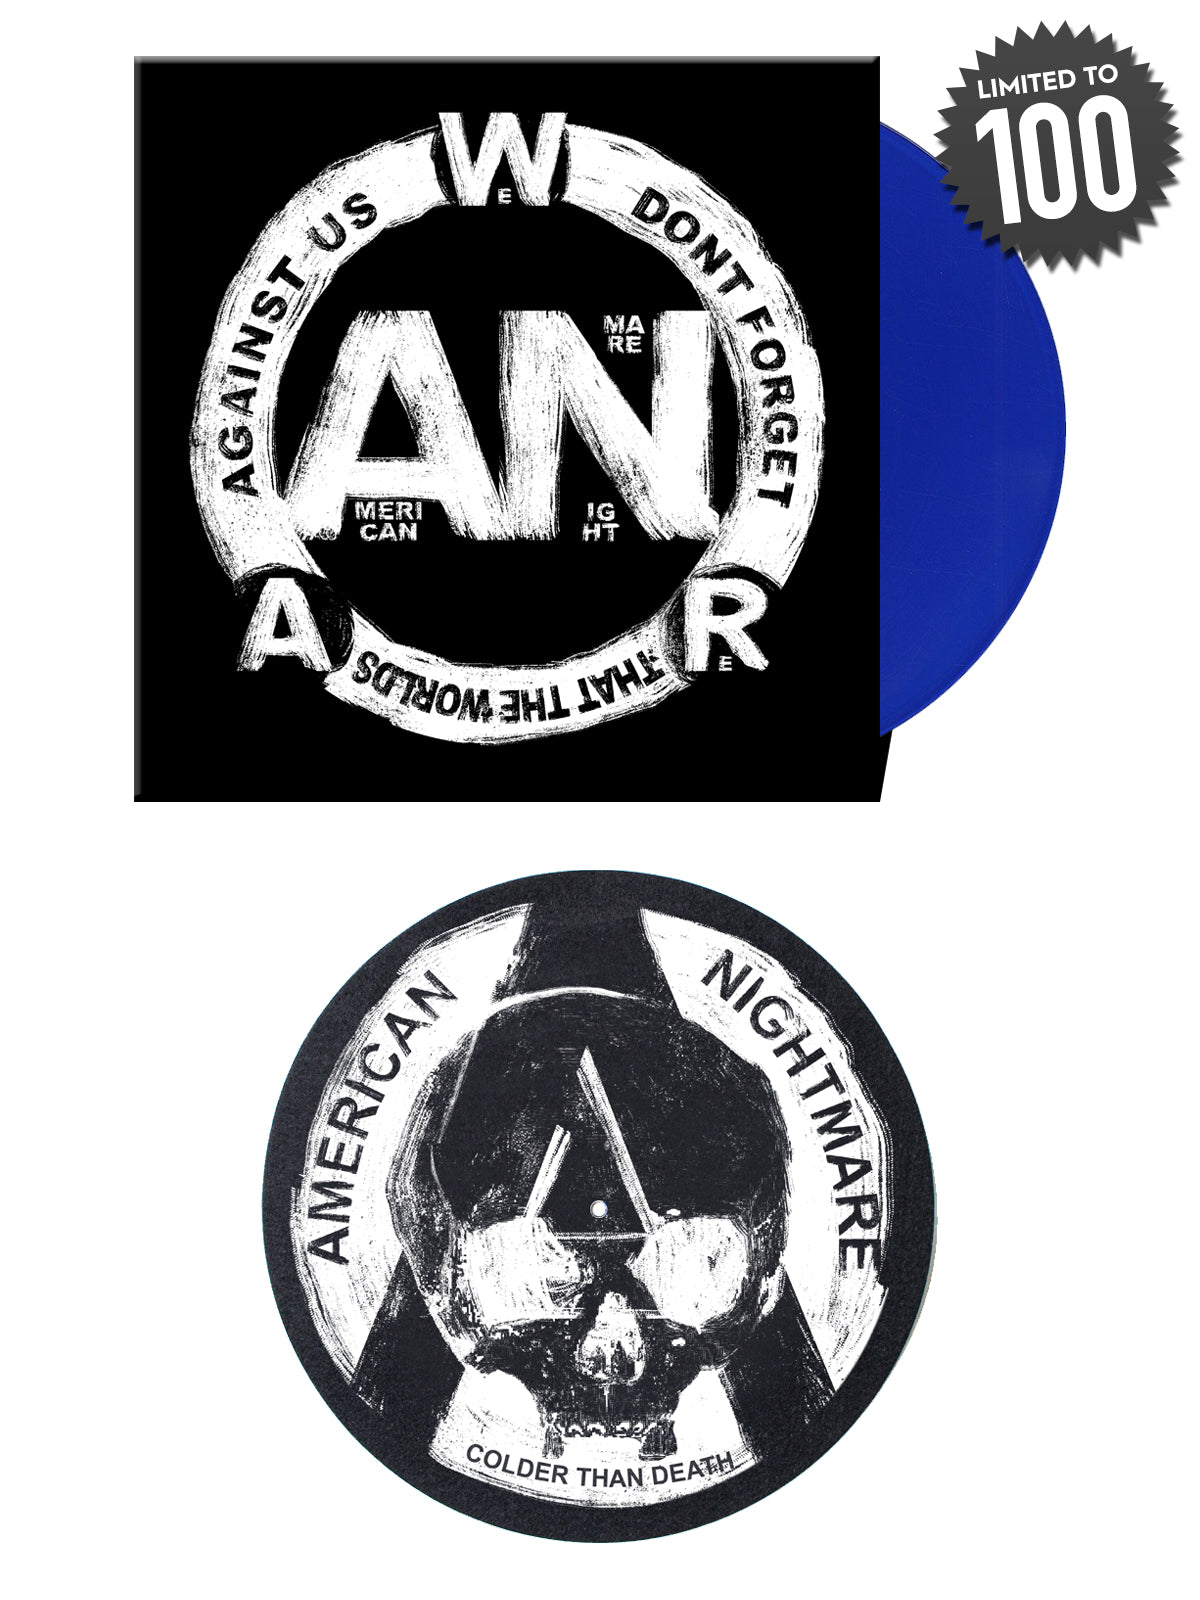 American Nightmare - Vinyl Bundle - Merch Limited